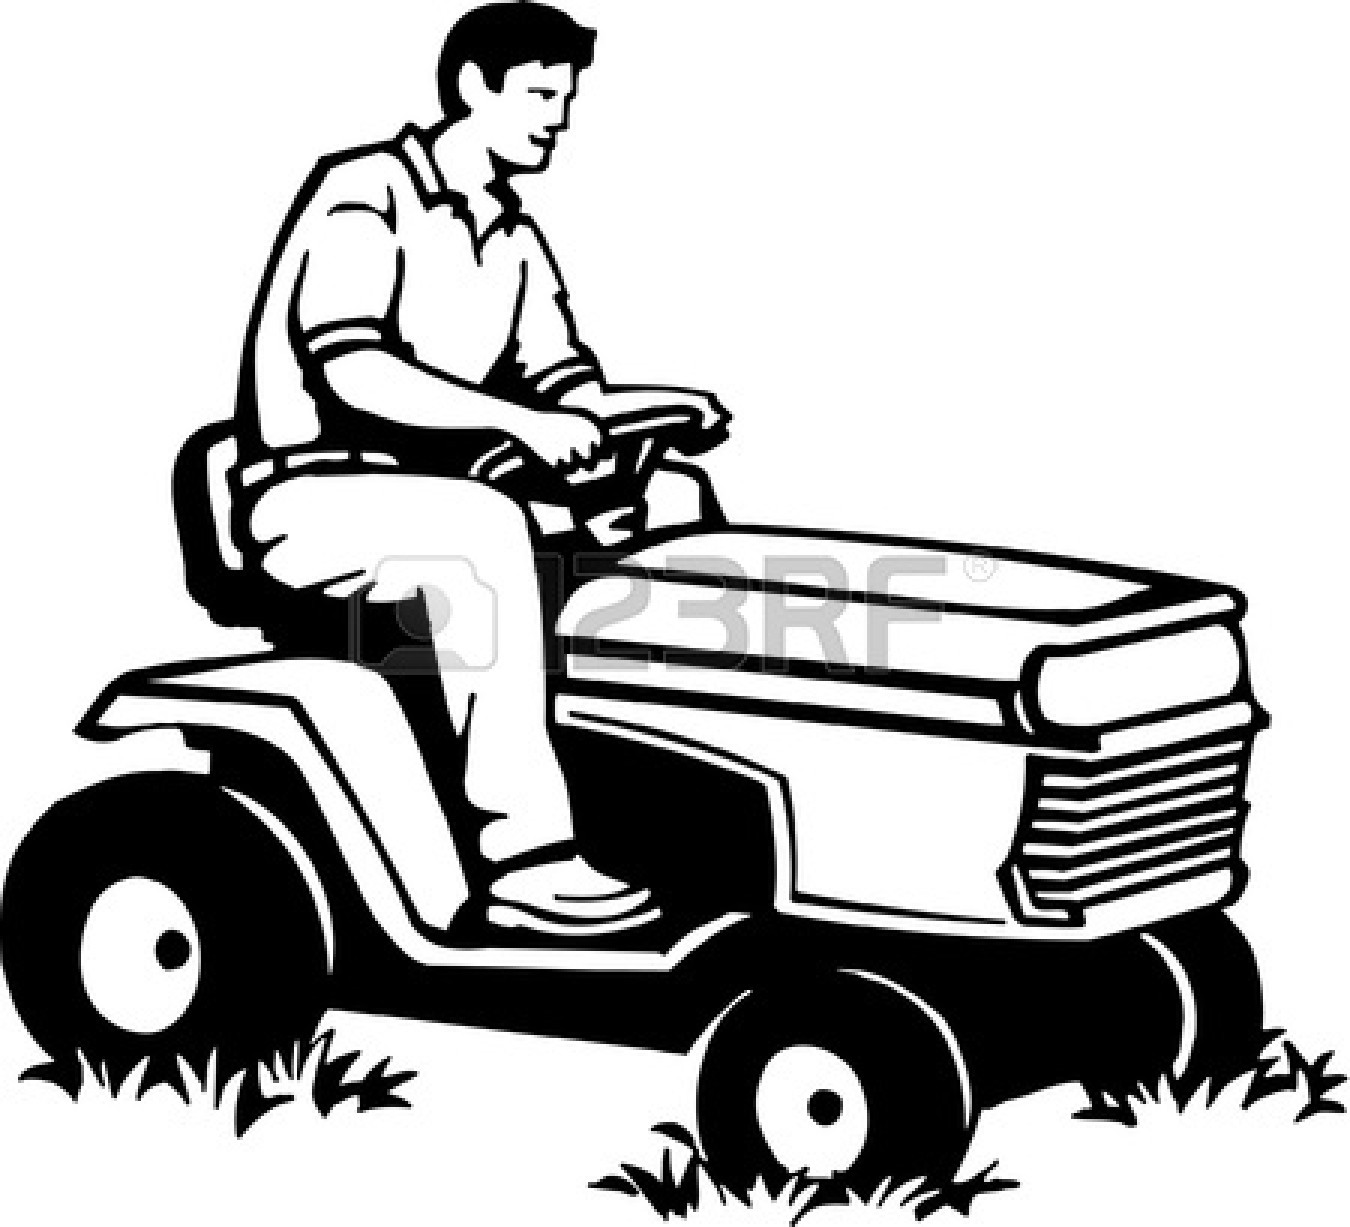 Riding lawn mower black and white with clipart picture library download Commercial Lawn Mower Clipart | Free download best Commercial Lawn ... picture library download